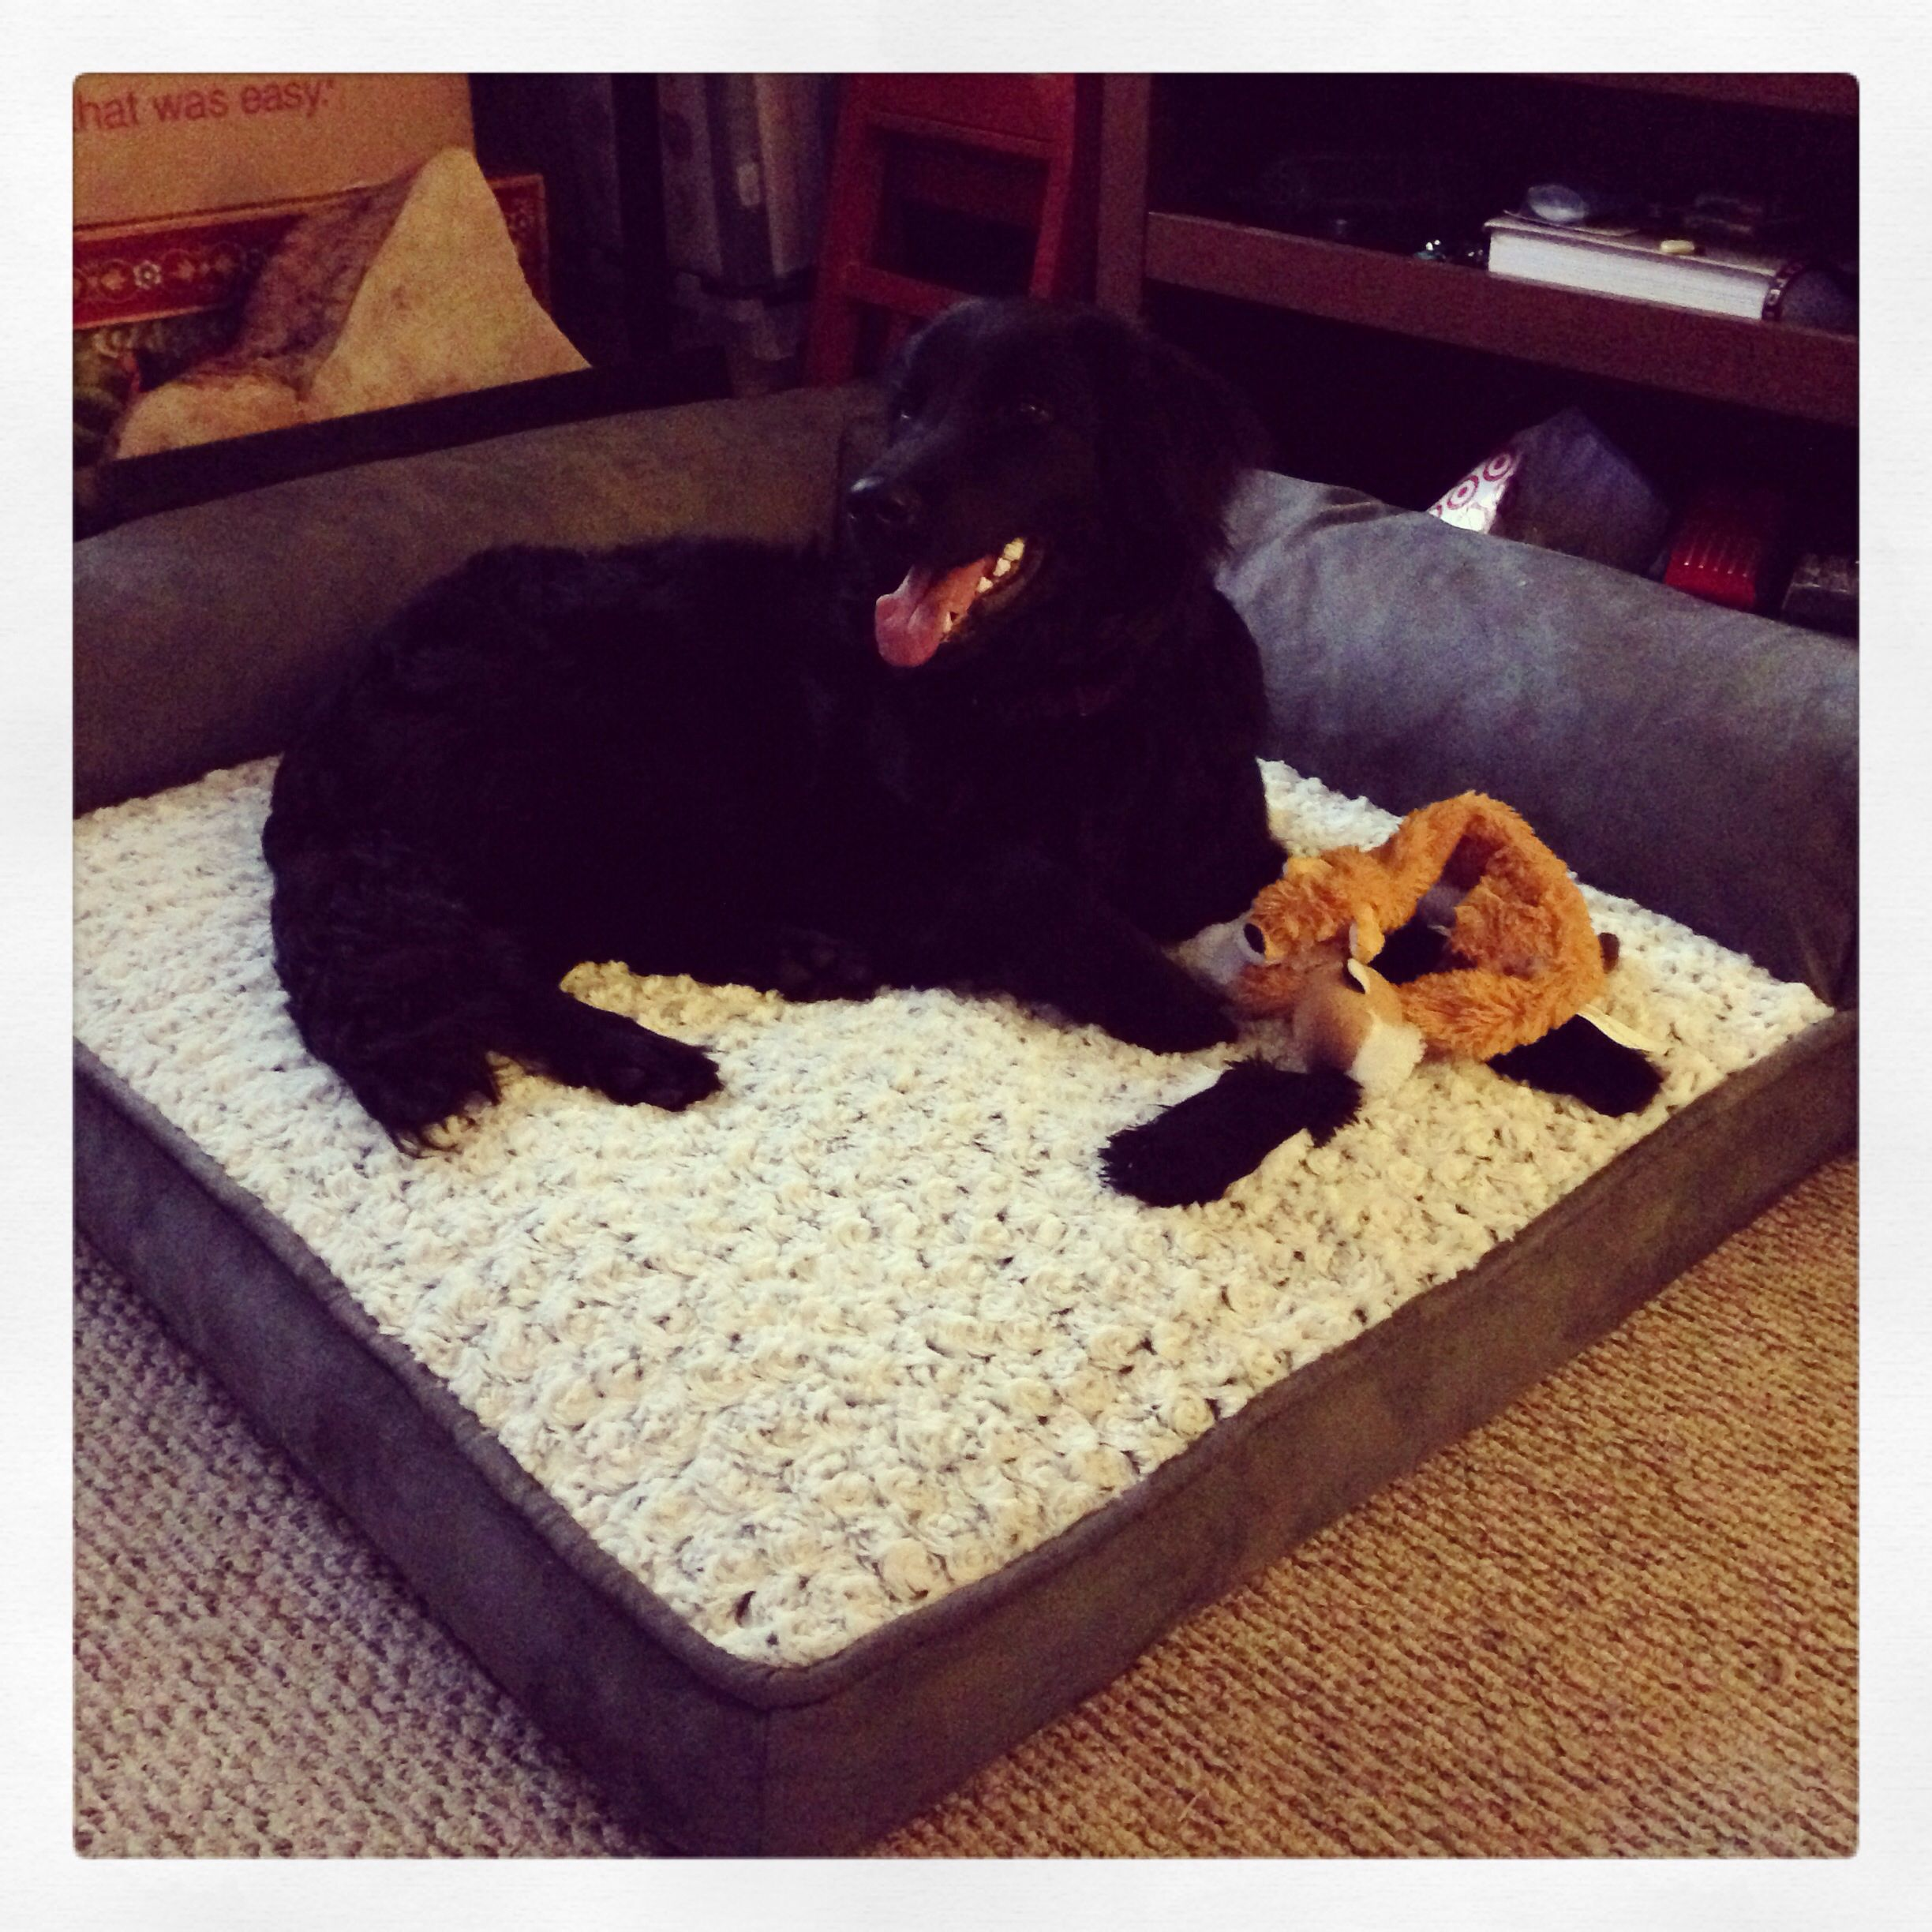 costco dog bed | home | pinterest | costco, dog beds and doggies